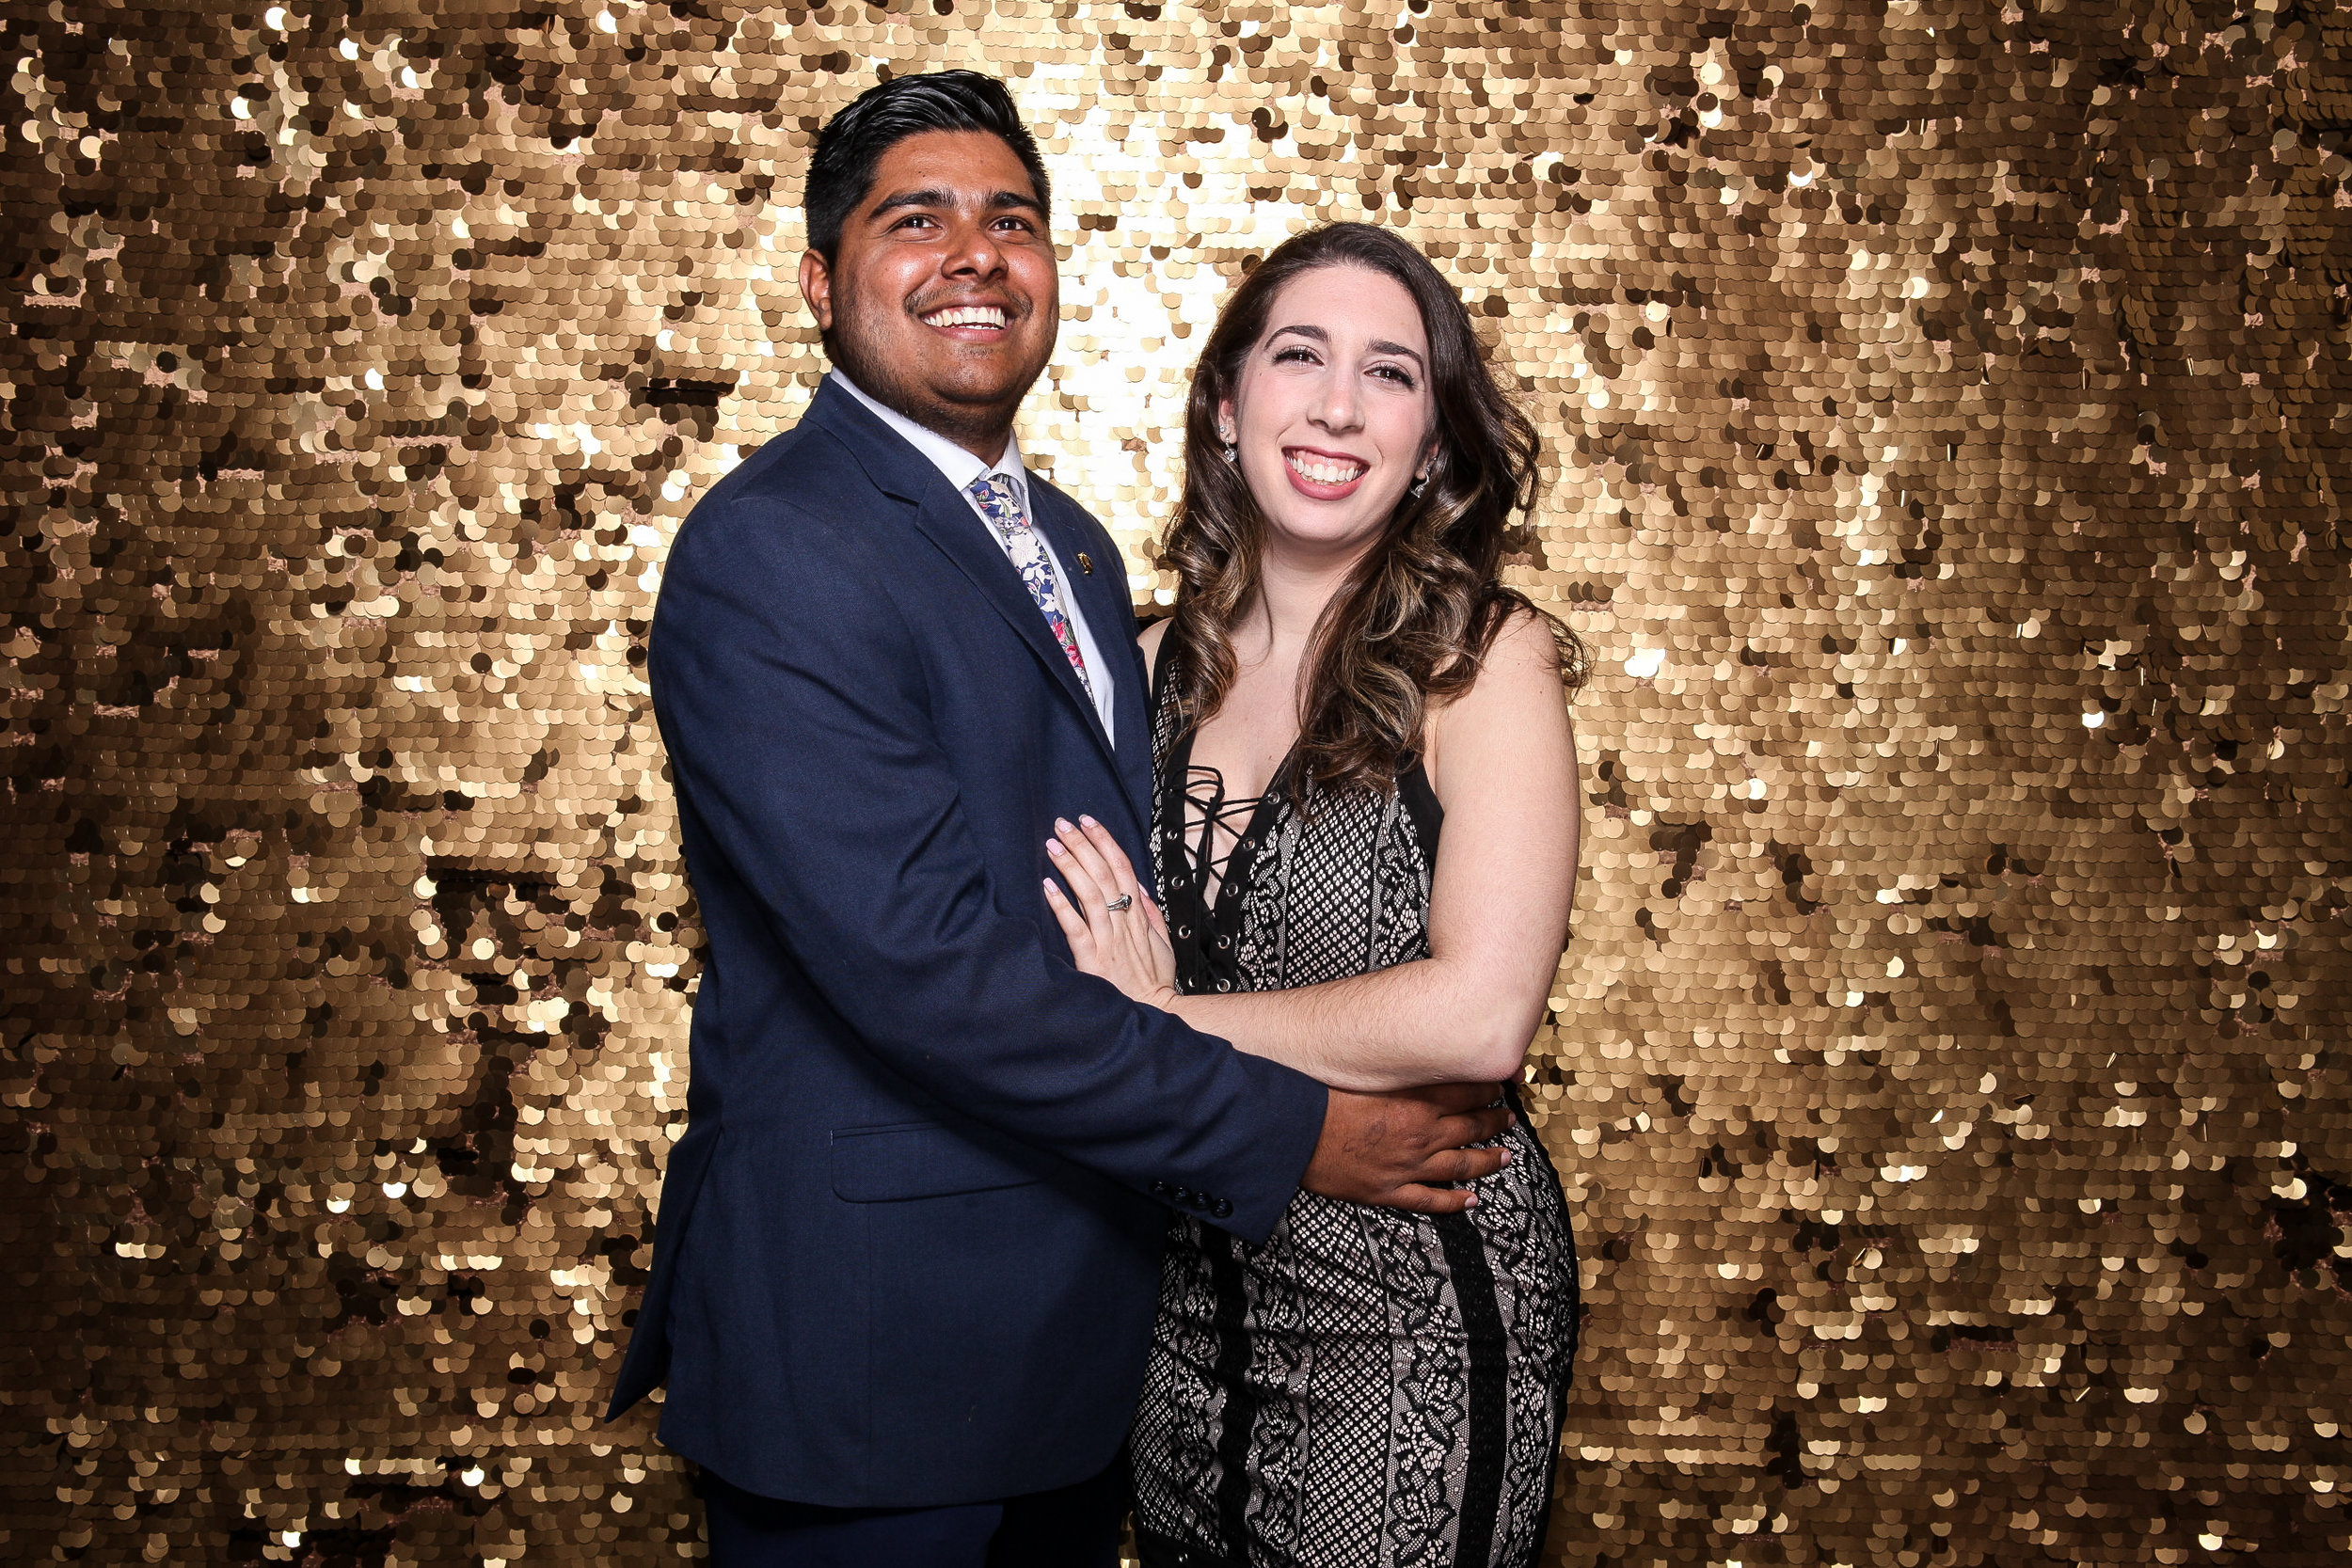 20190503_Adelphi_Senior_Formal-134.jpg